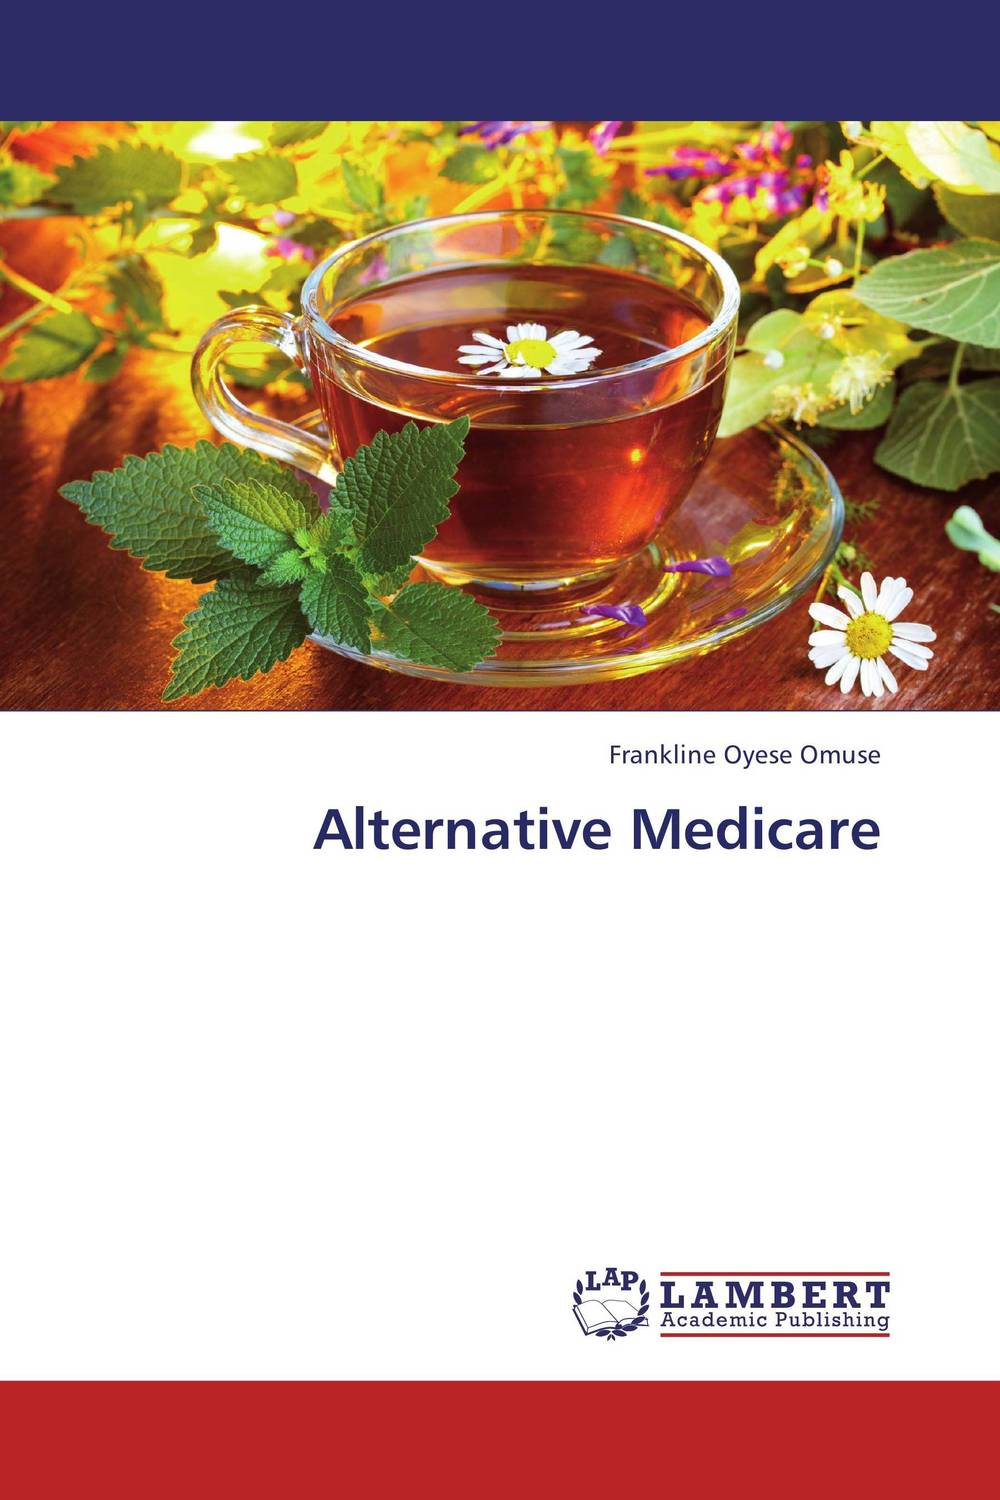 Alternative Medicare